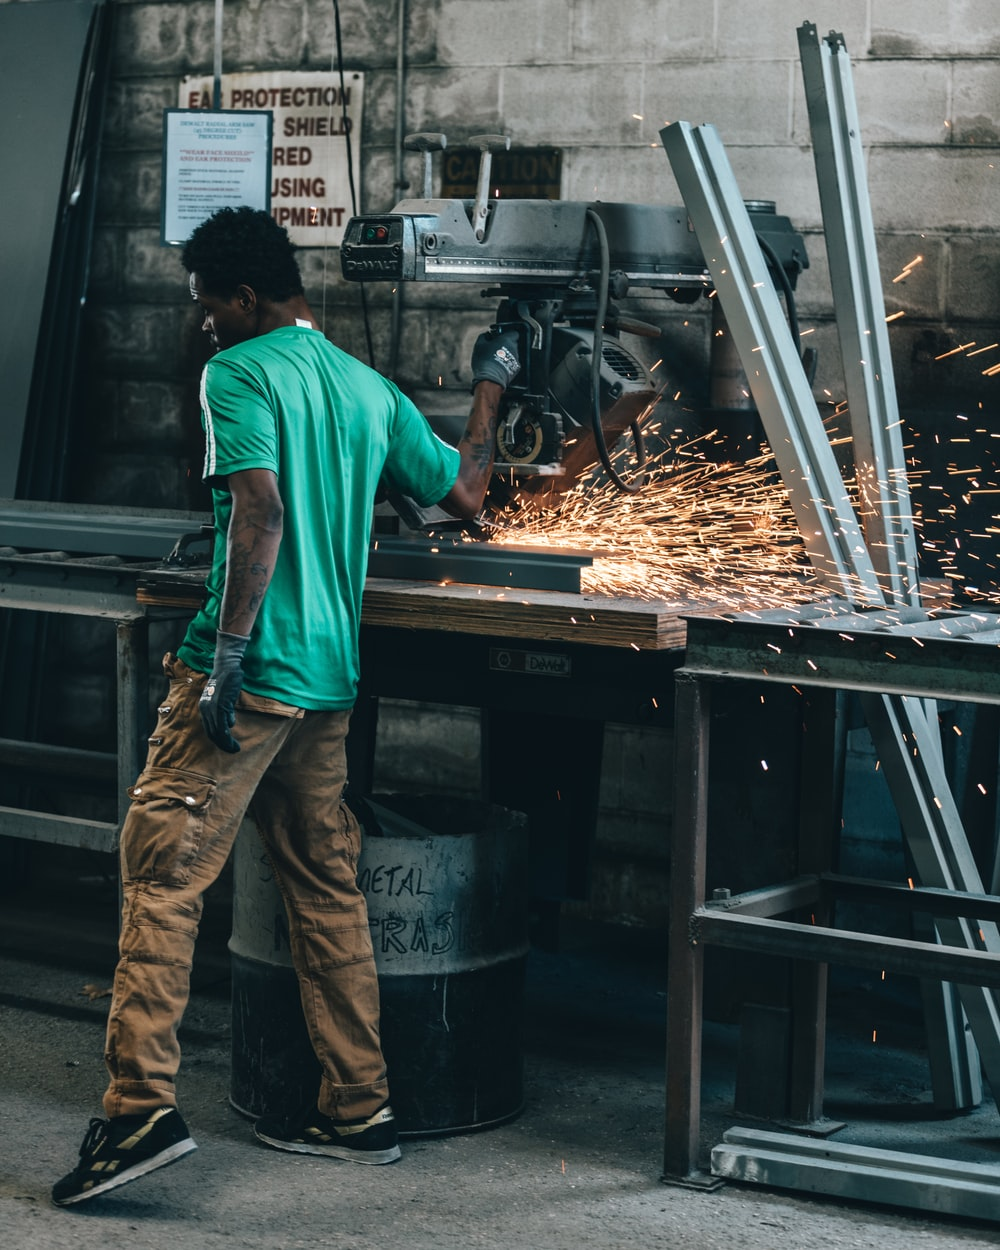 man working with industrial machine